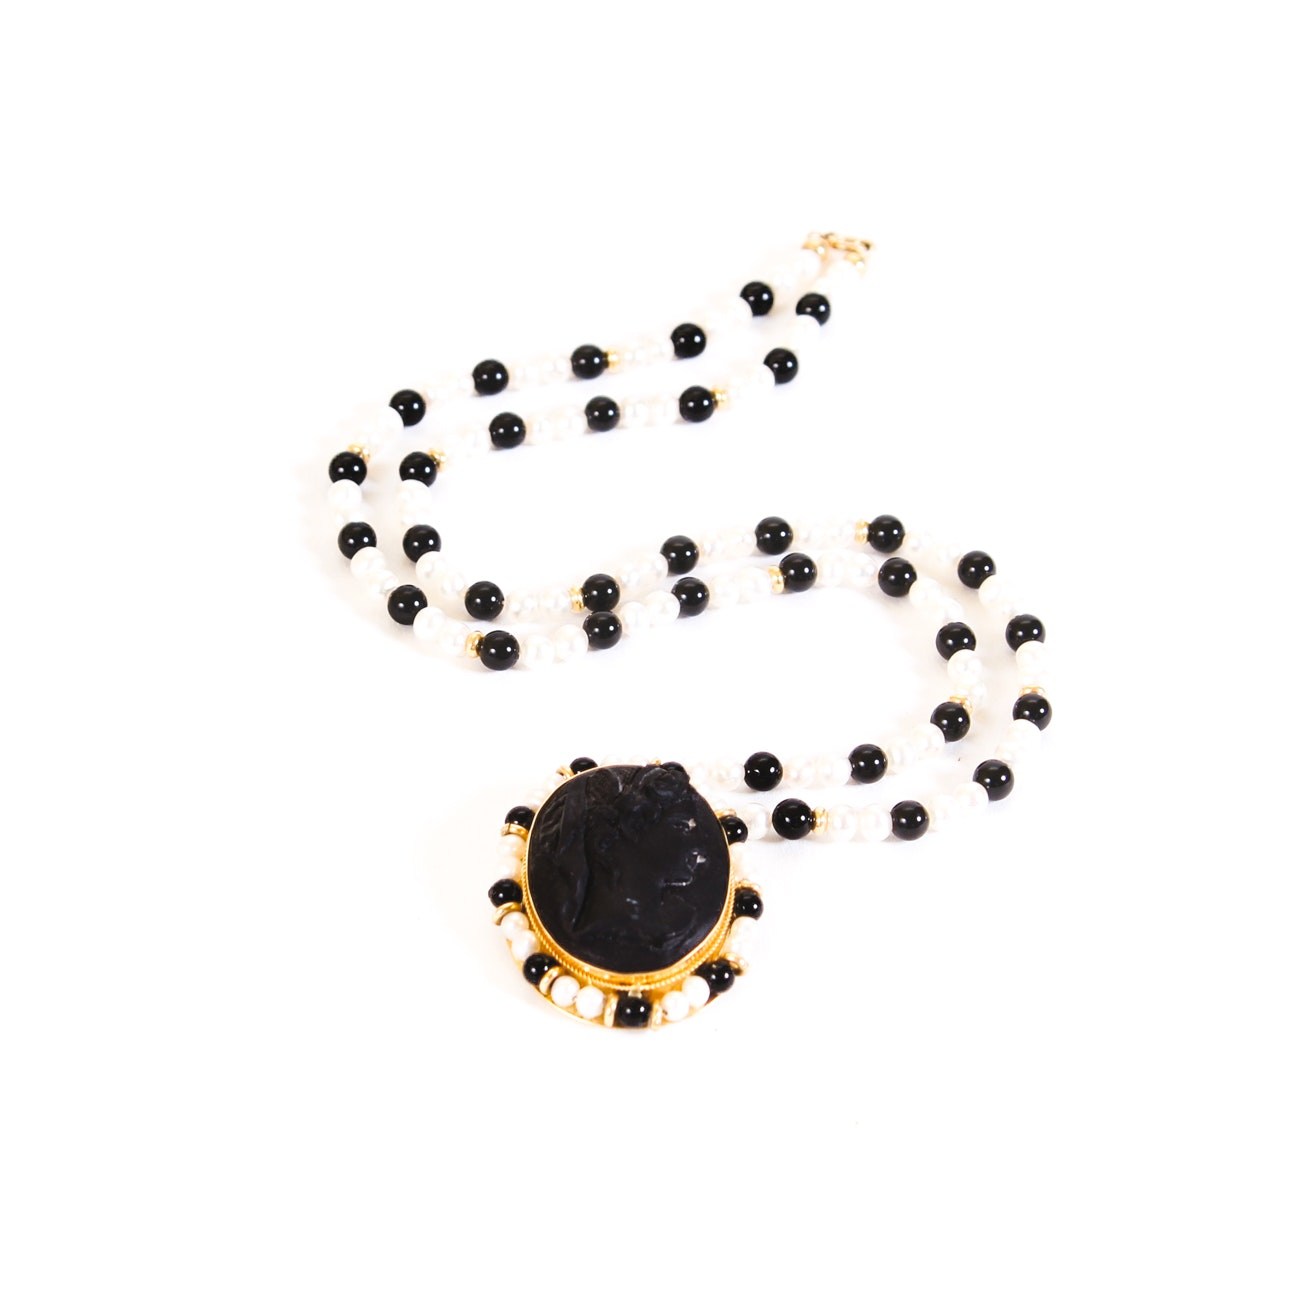 18K Yellow Gold Onyx and Pearl Pendant Necklace